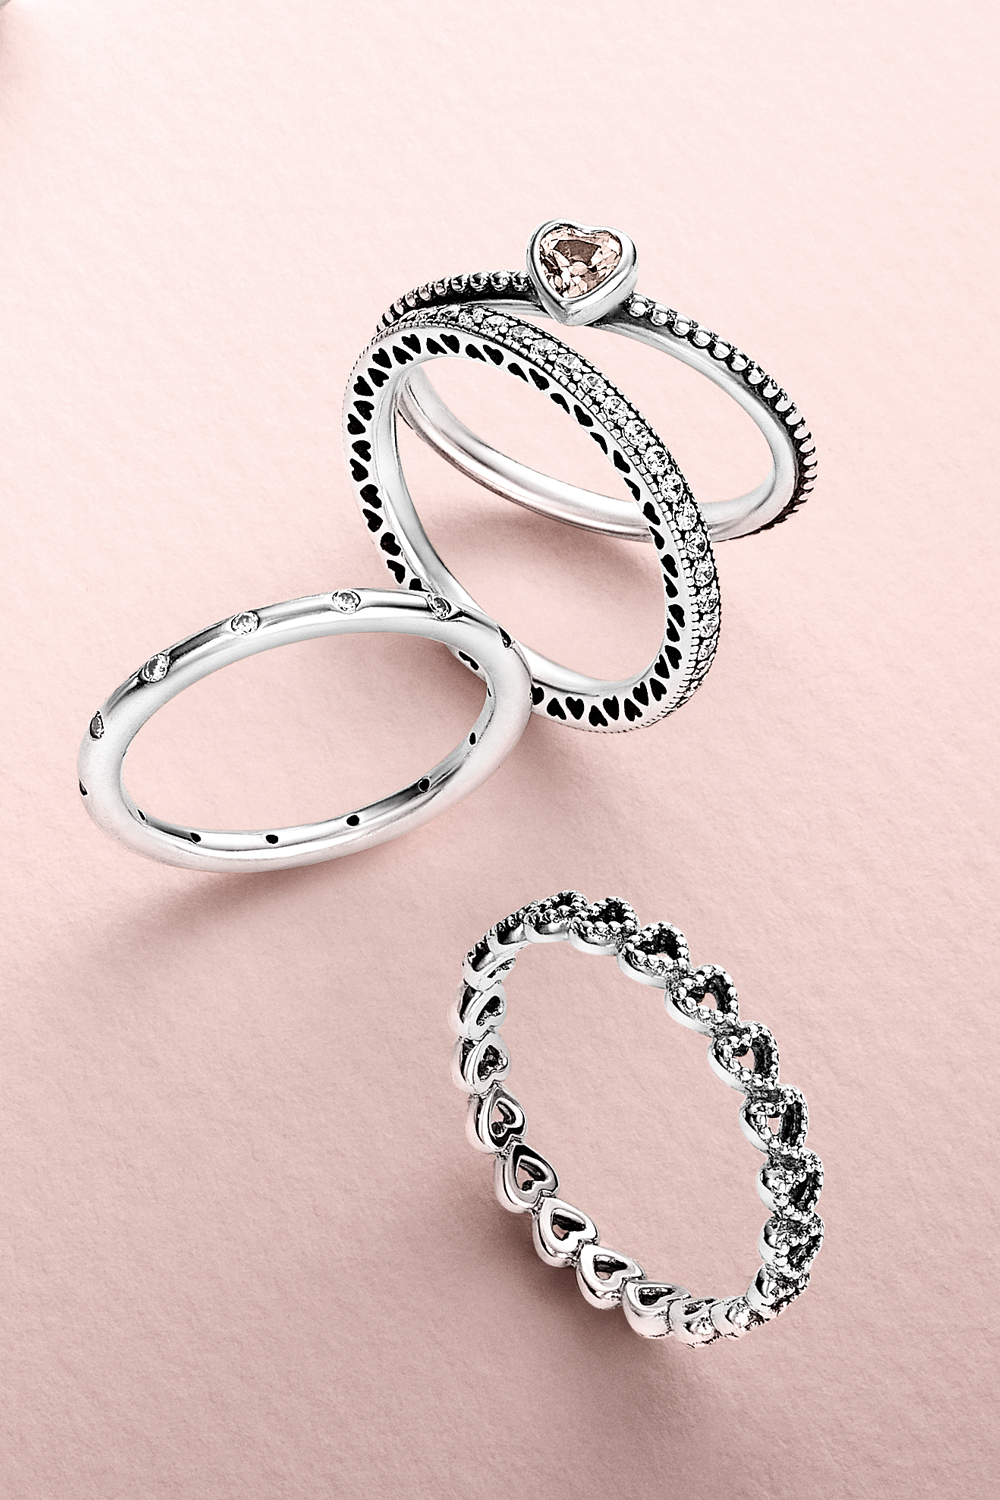 Create A Romantic Lookstacking Cute Heart Shaped Rings (View 2 of 25)